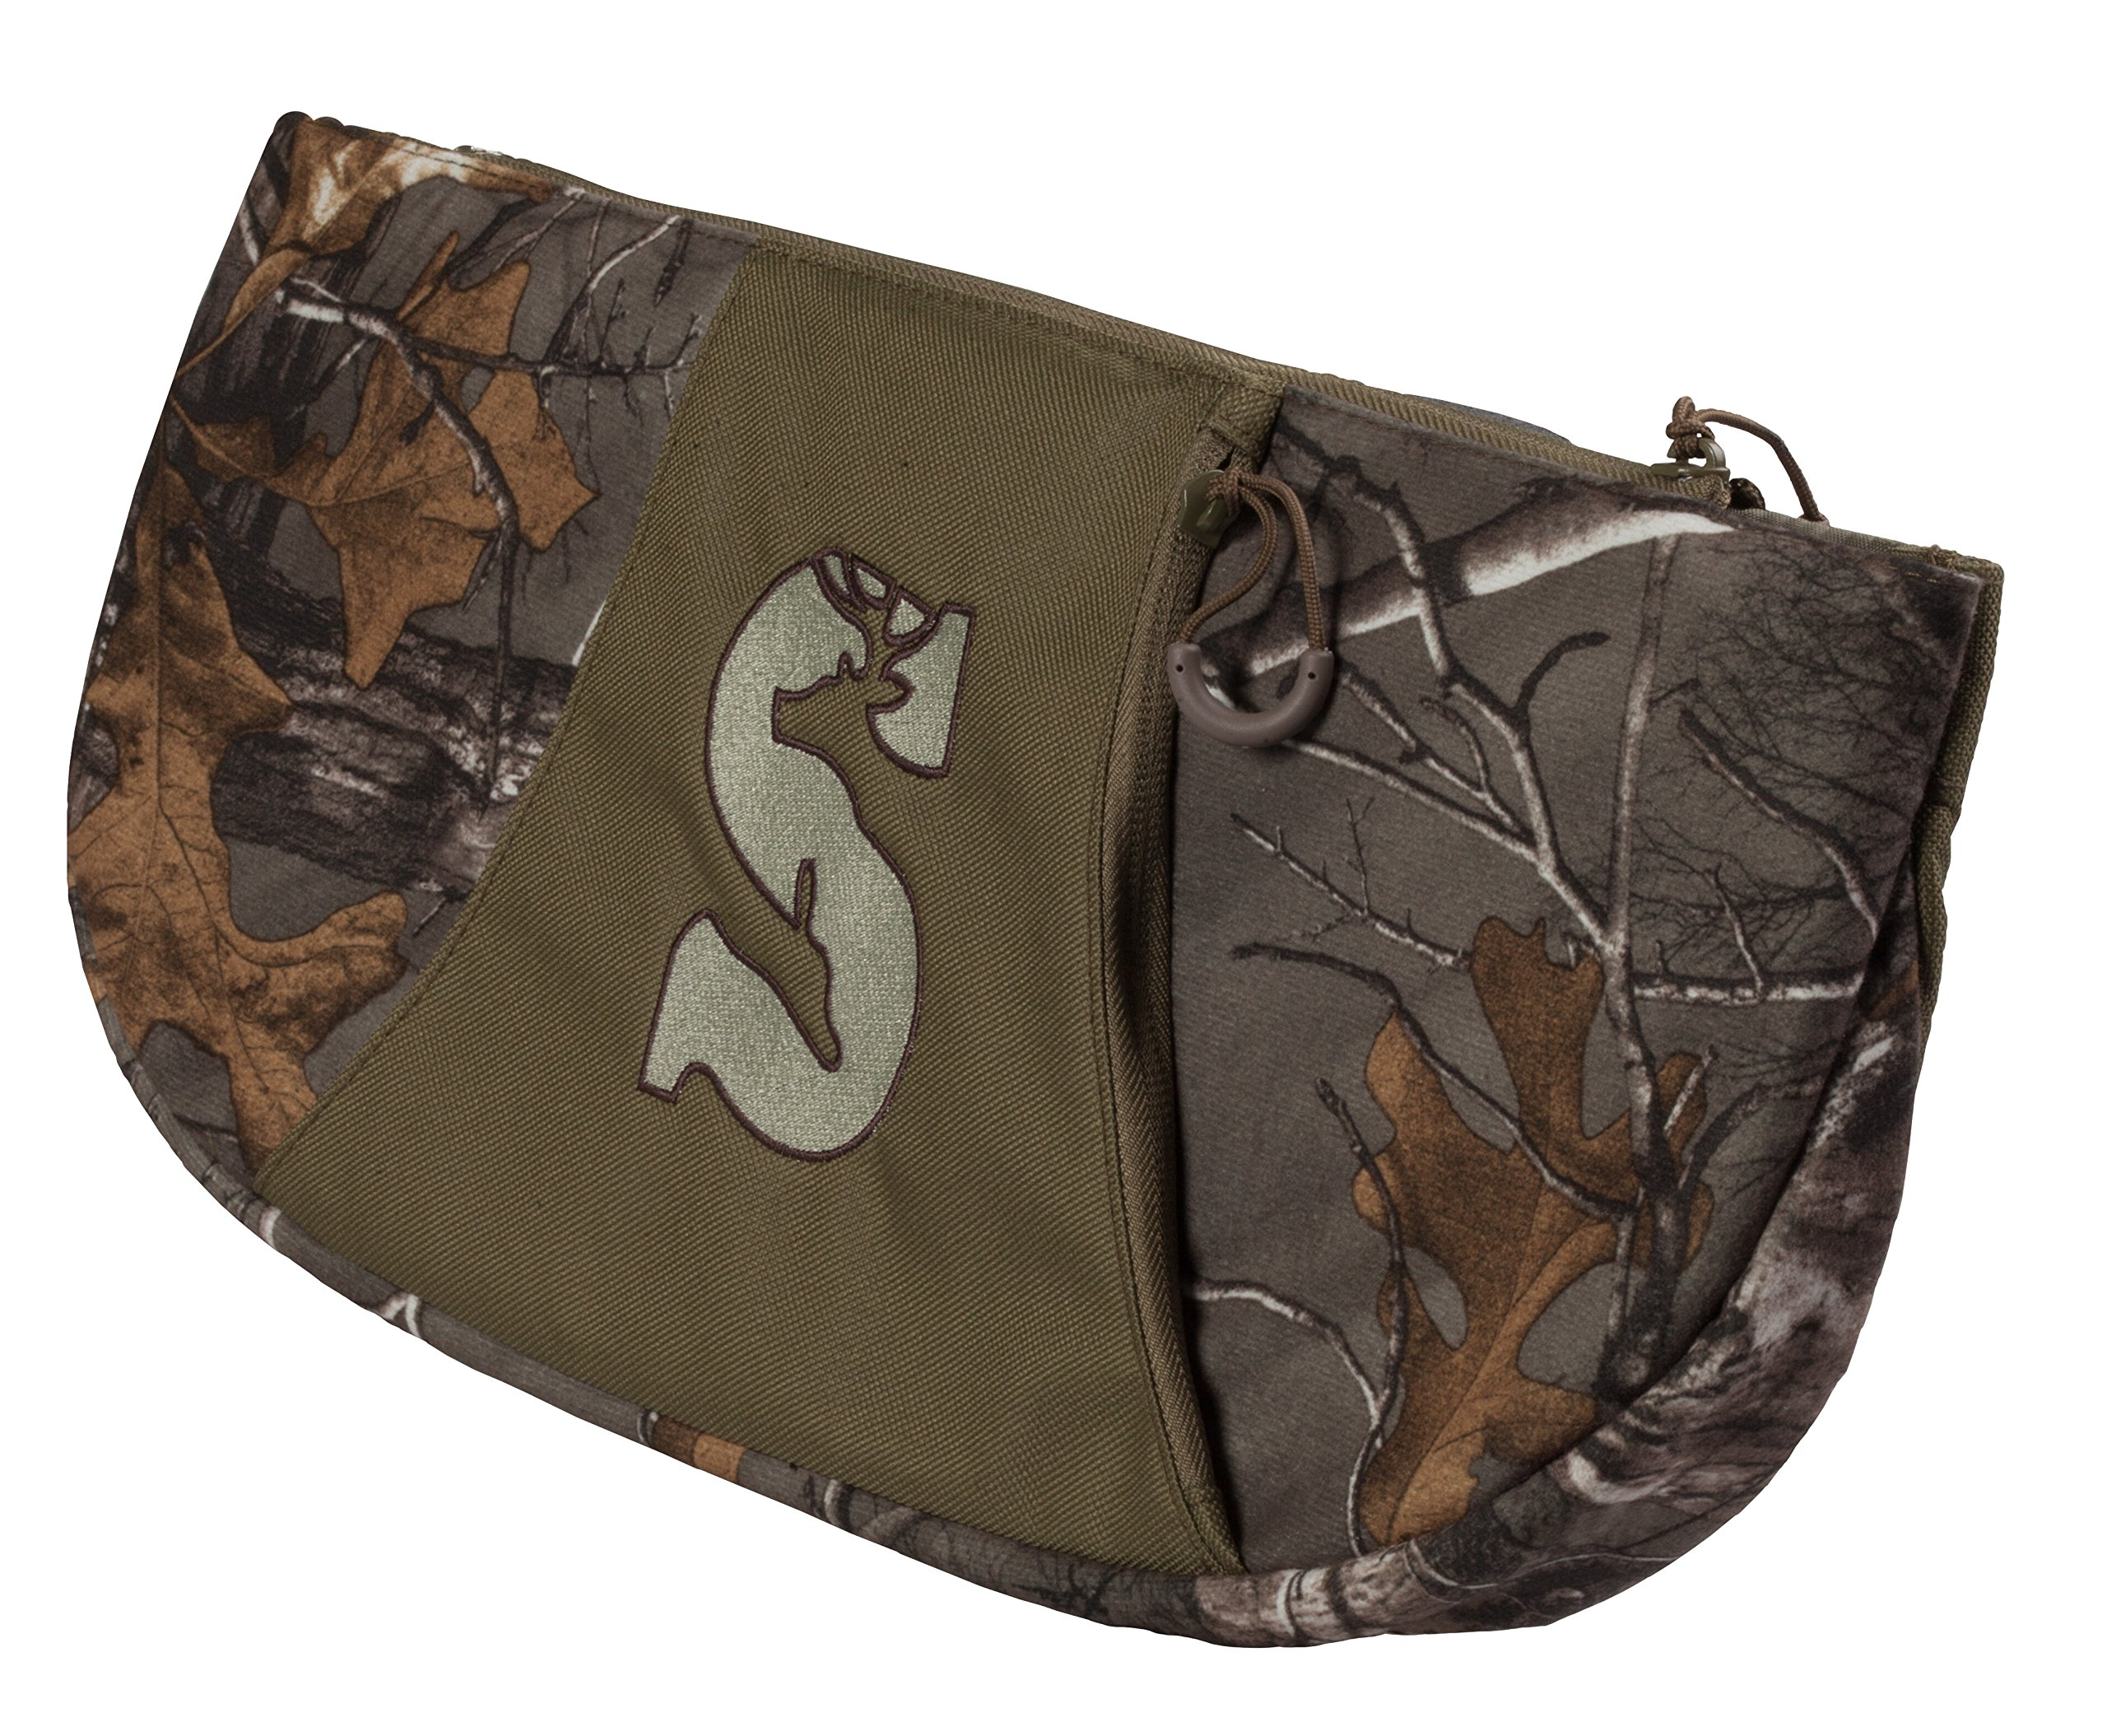 Summit Treestands Harness Storage Pack by Summit Treestands (Image #1)